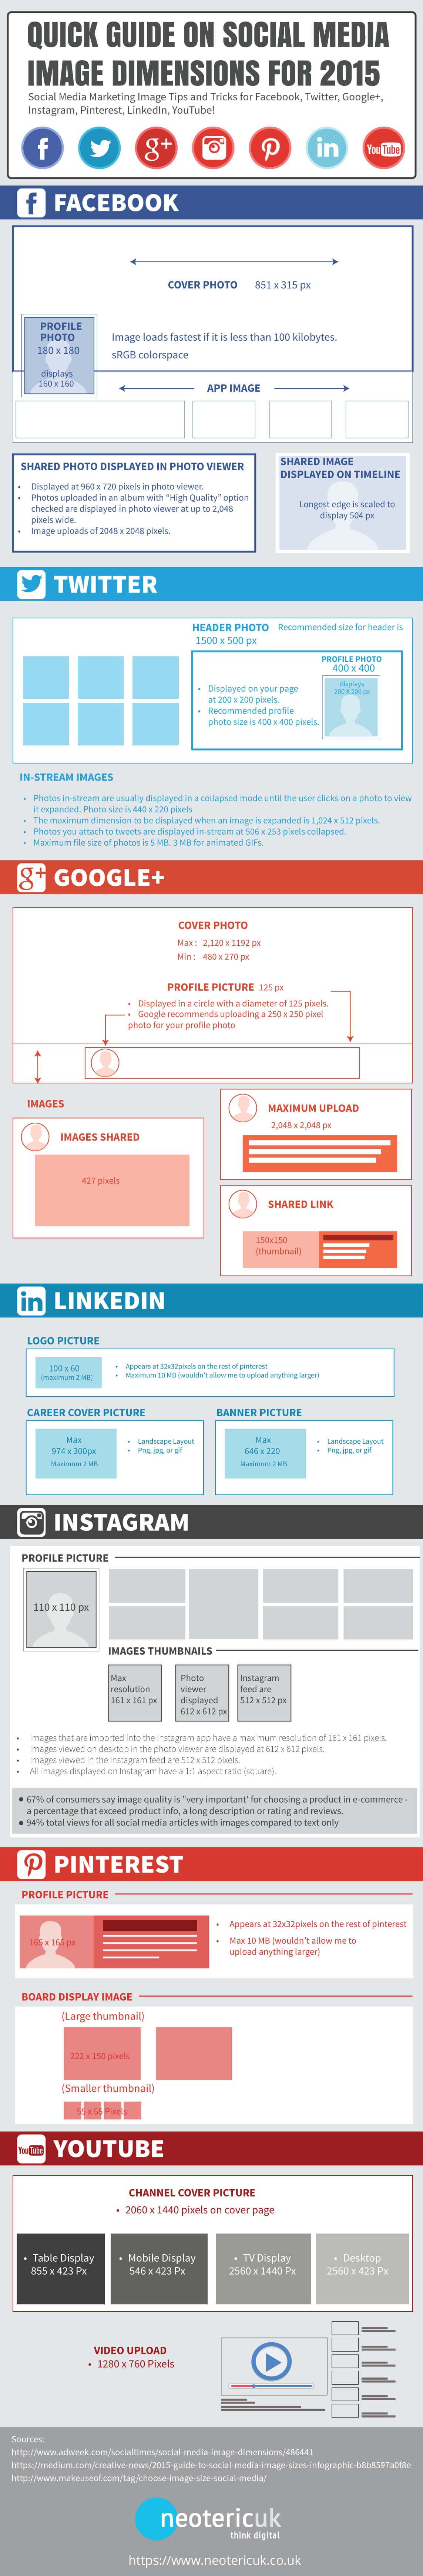 Quick Guide on Social Media Image Dimensions for 2015